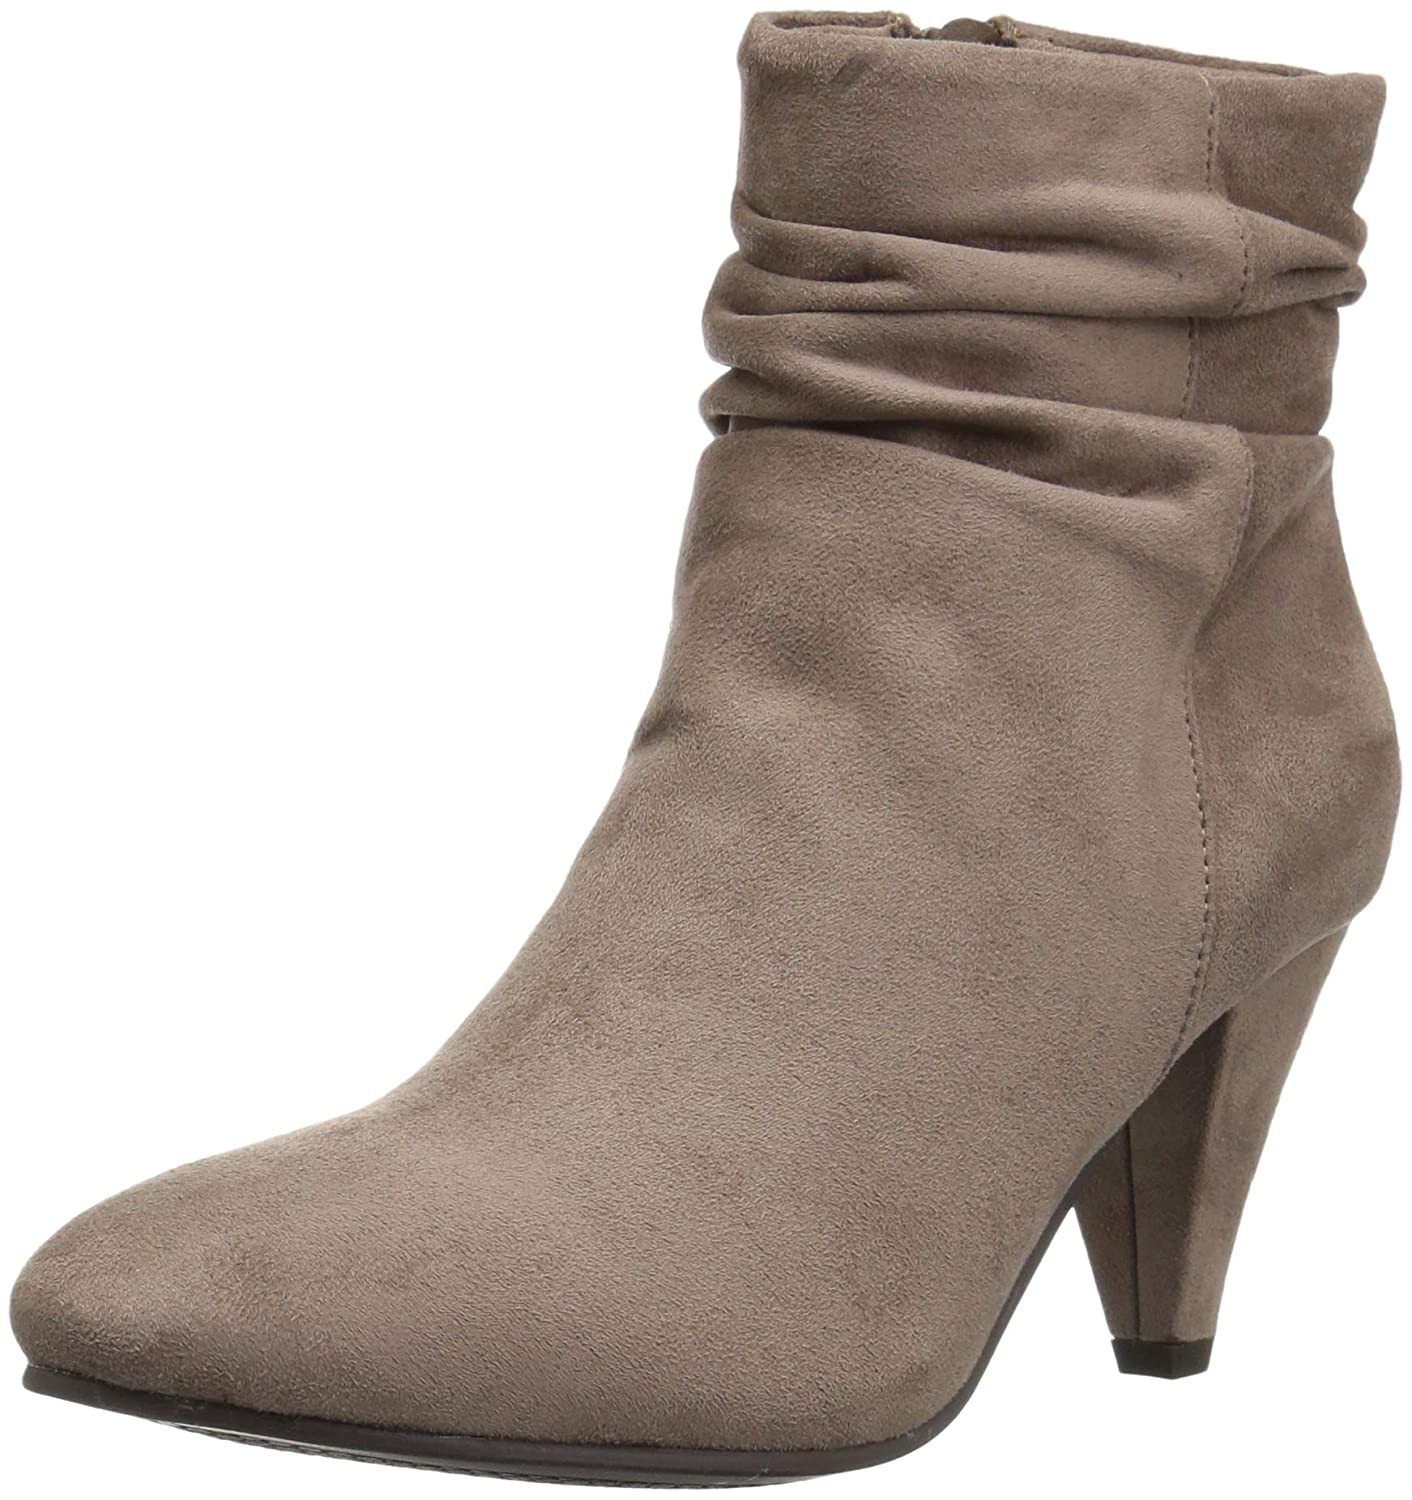 CL by Chinese Laundry Womens Nanda Ankle Boot